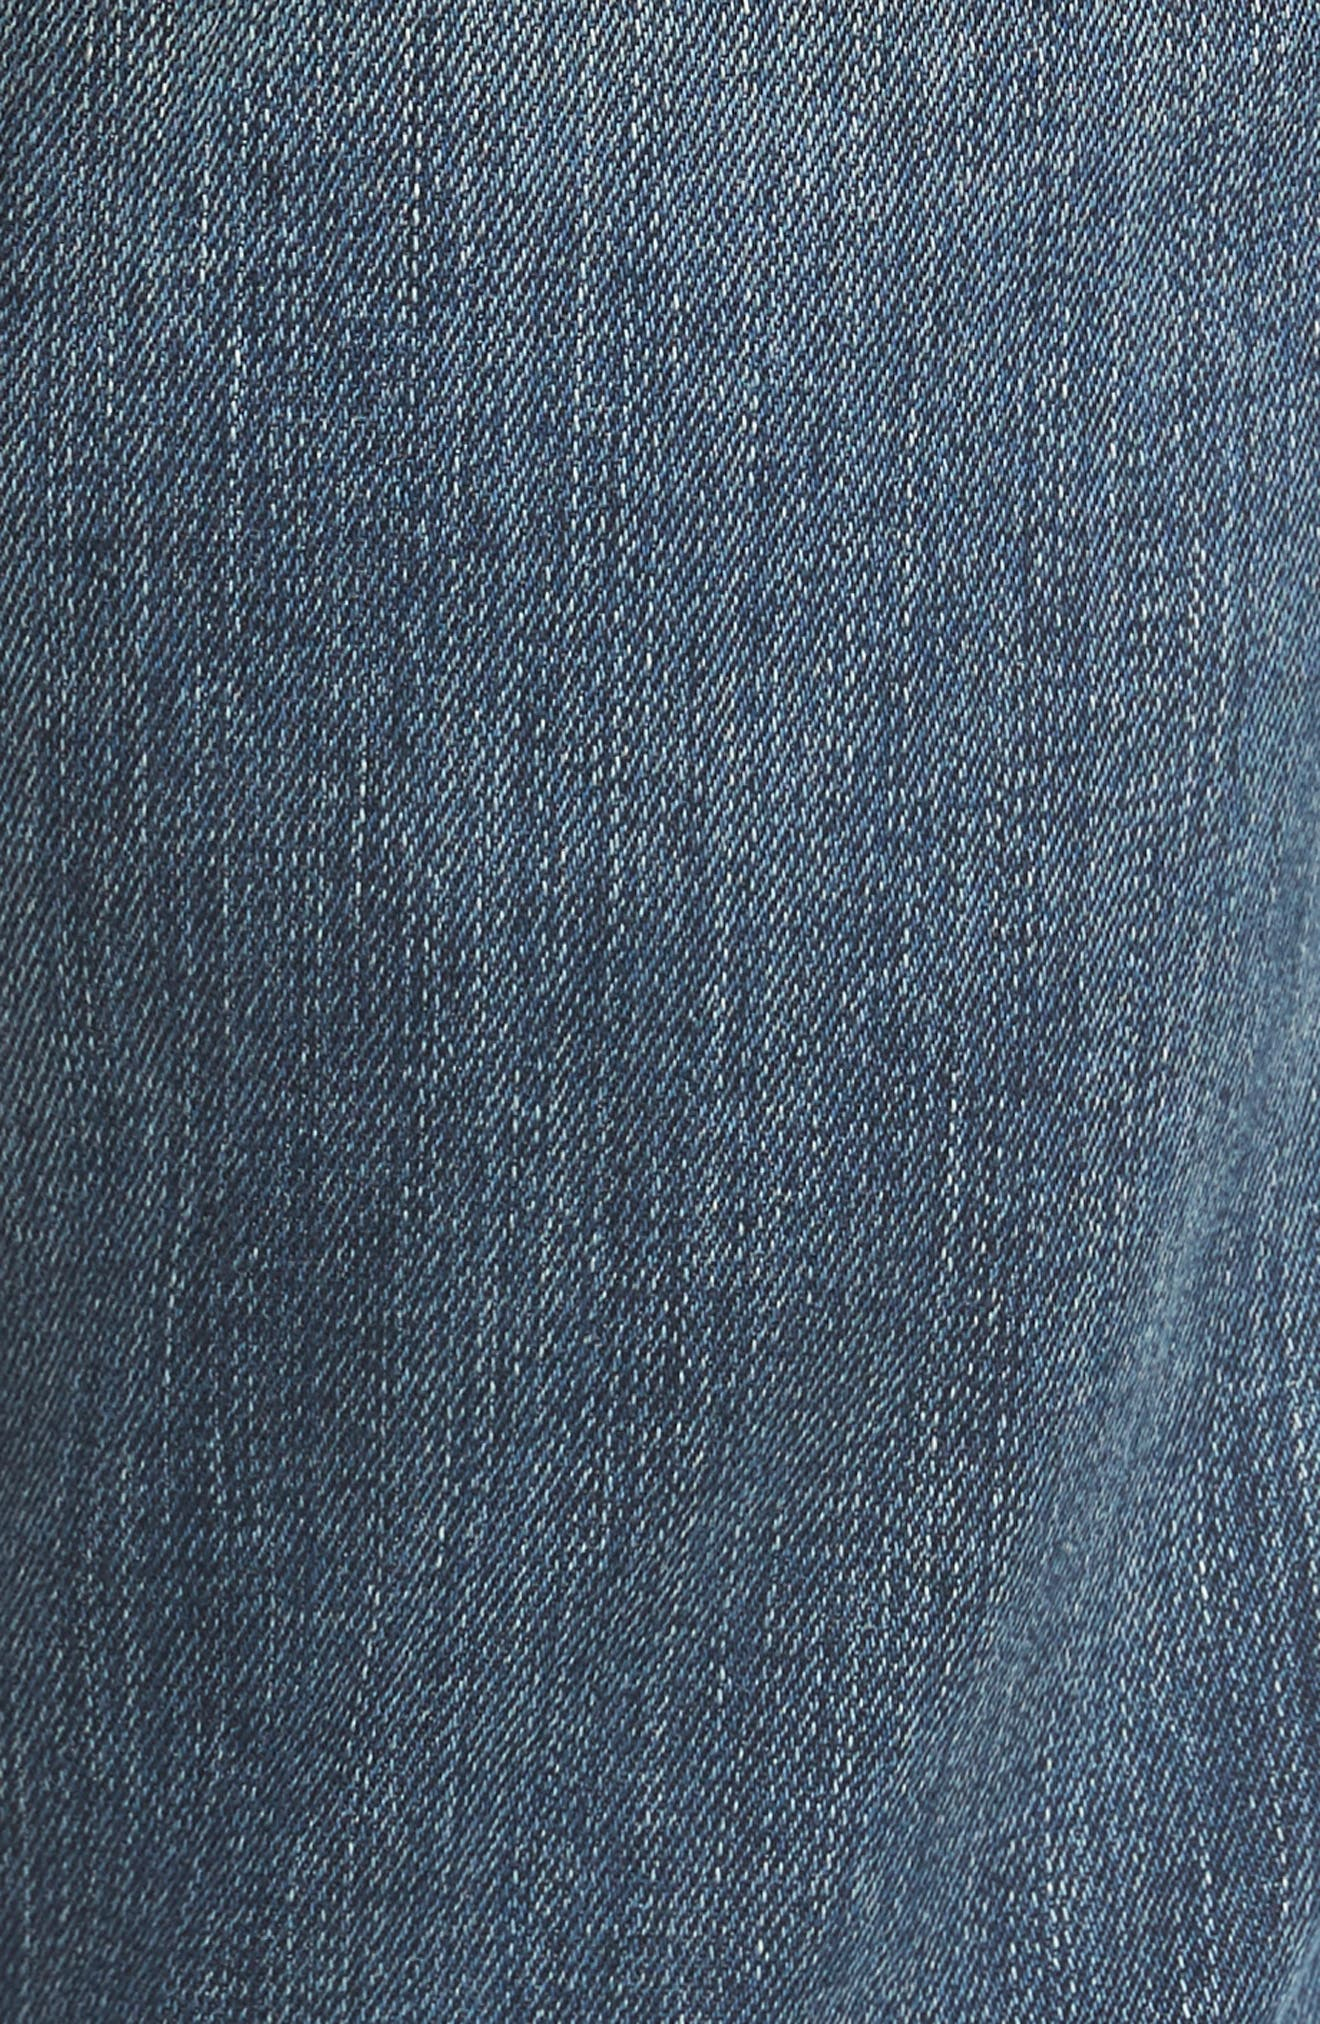 Jimmy Slim Straight Leg Jeans,                             Alternate thumbnail 5, color,                             CATHEDRAL